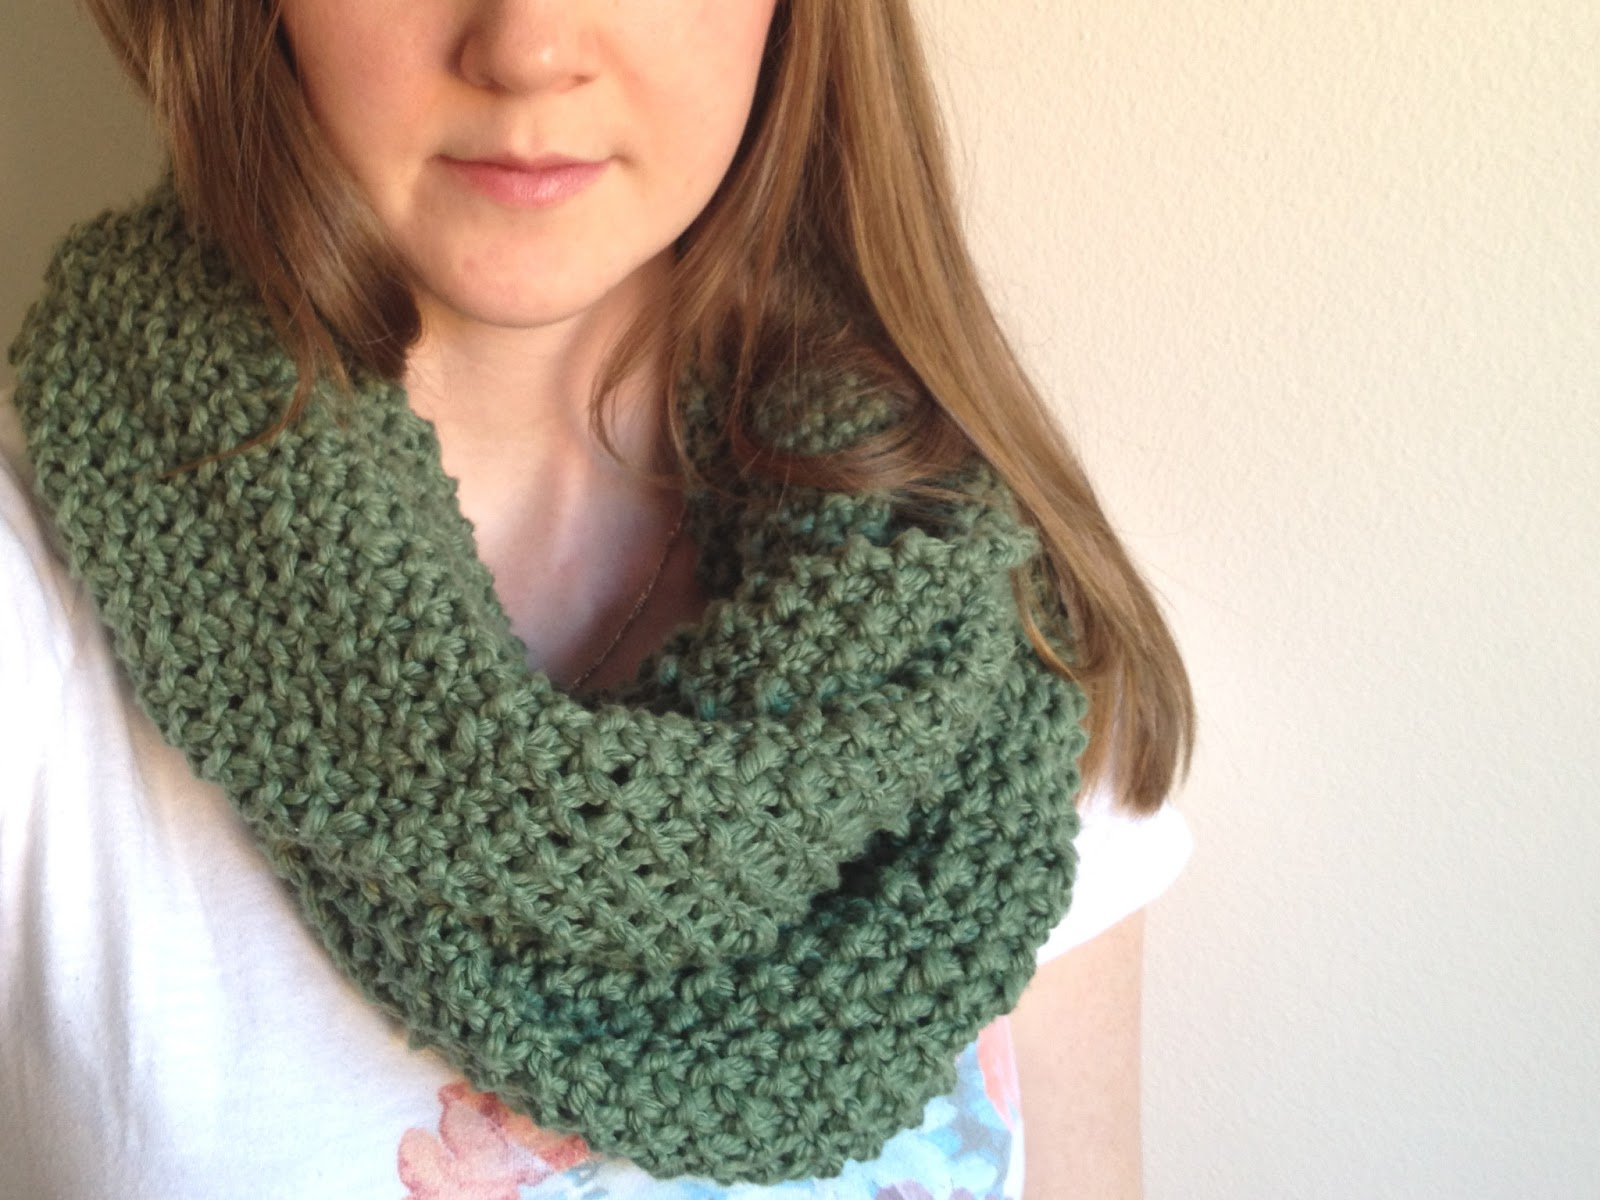 Free Knitting Patterns For Scarves For Beginners : tinselmint: FREE INFINITY SCARF PATTERN FOR BEGINNERS